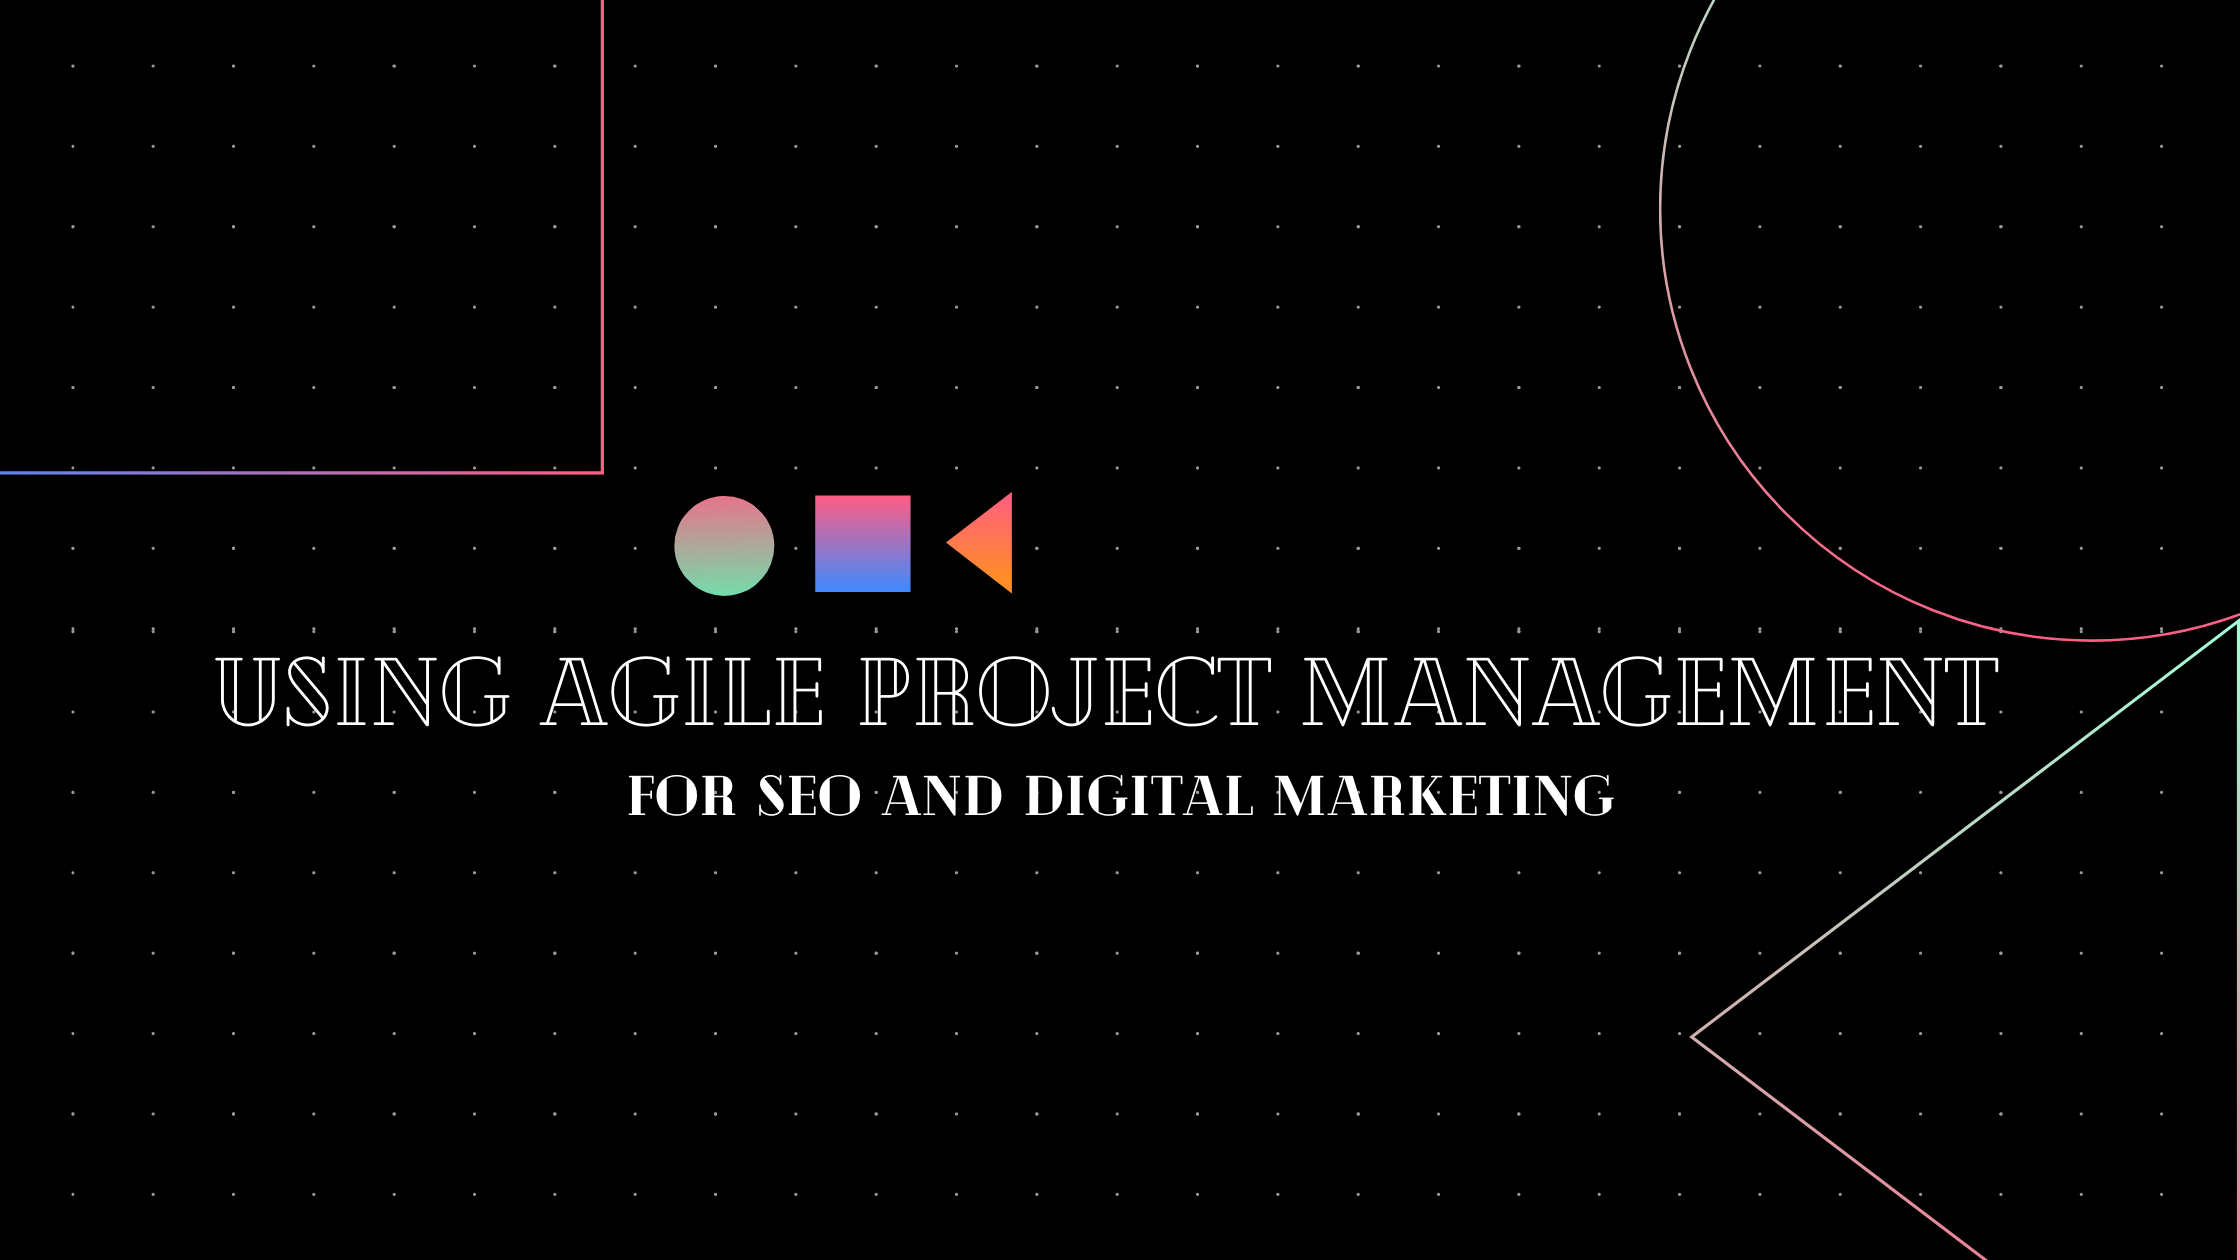 Using agile project management for SEO & digital marketing